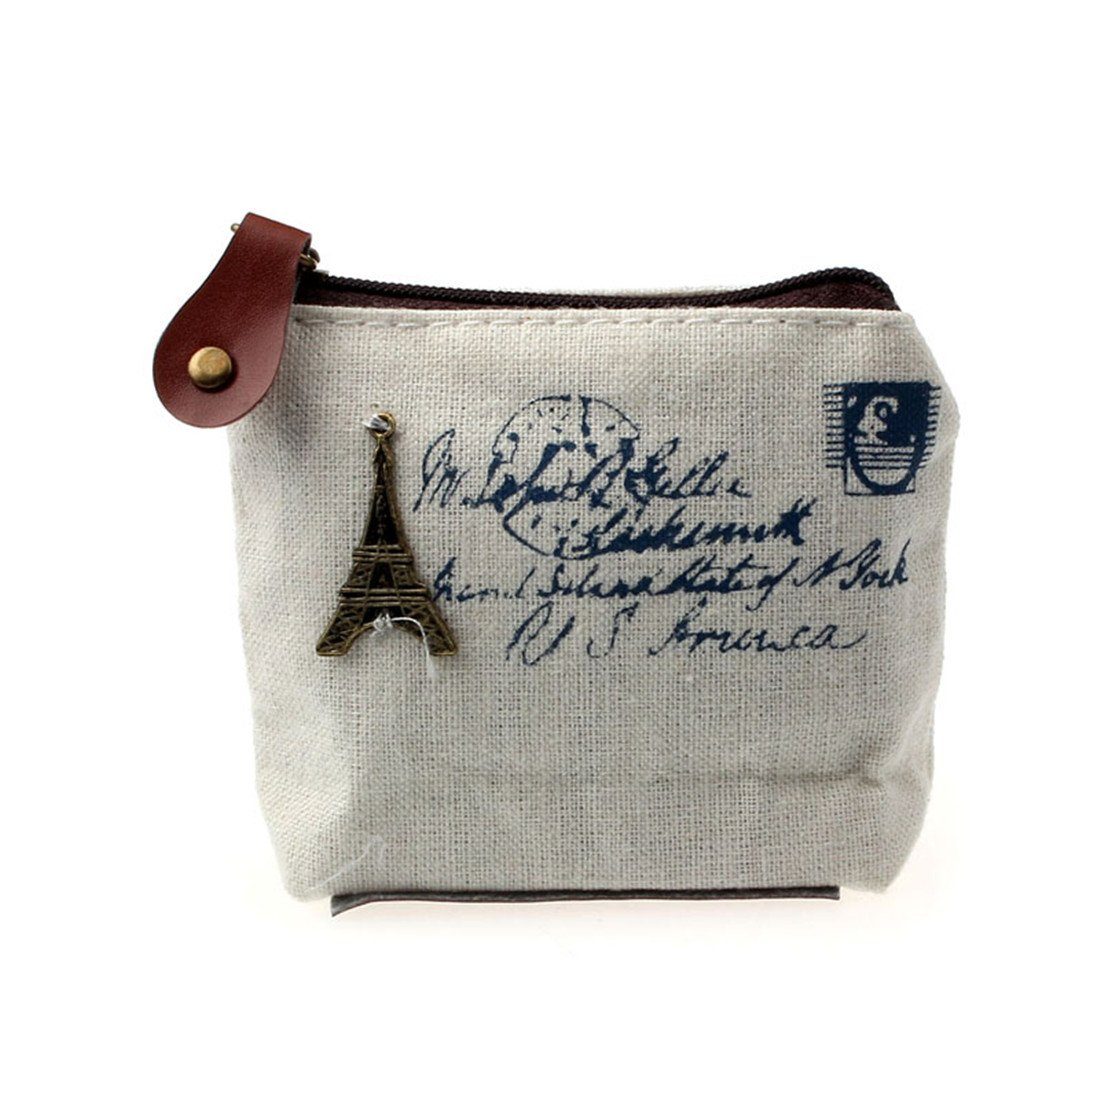 Amazon.com: Toponly Eiffel Tower - Monedero de lona para ...